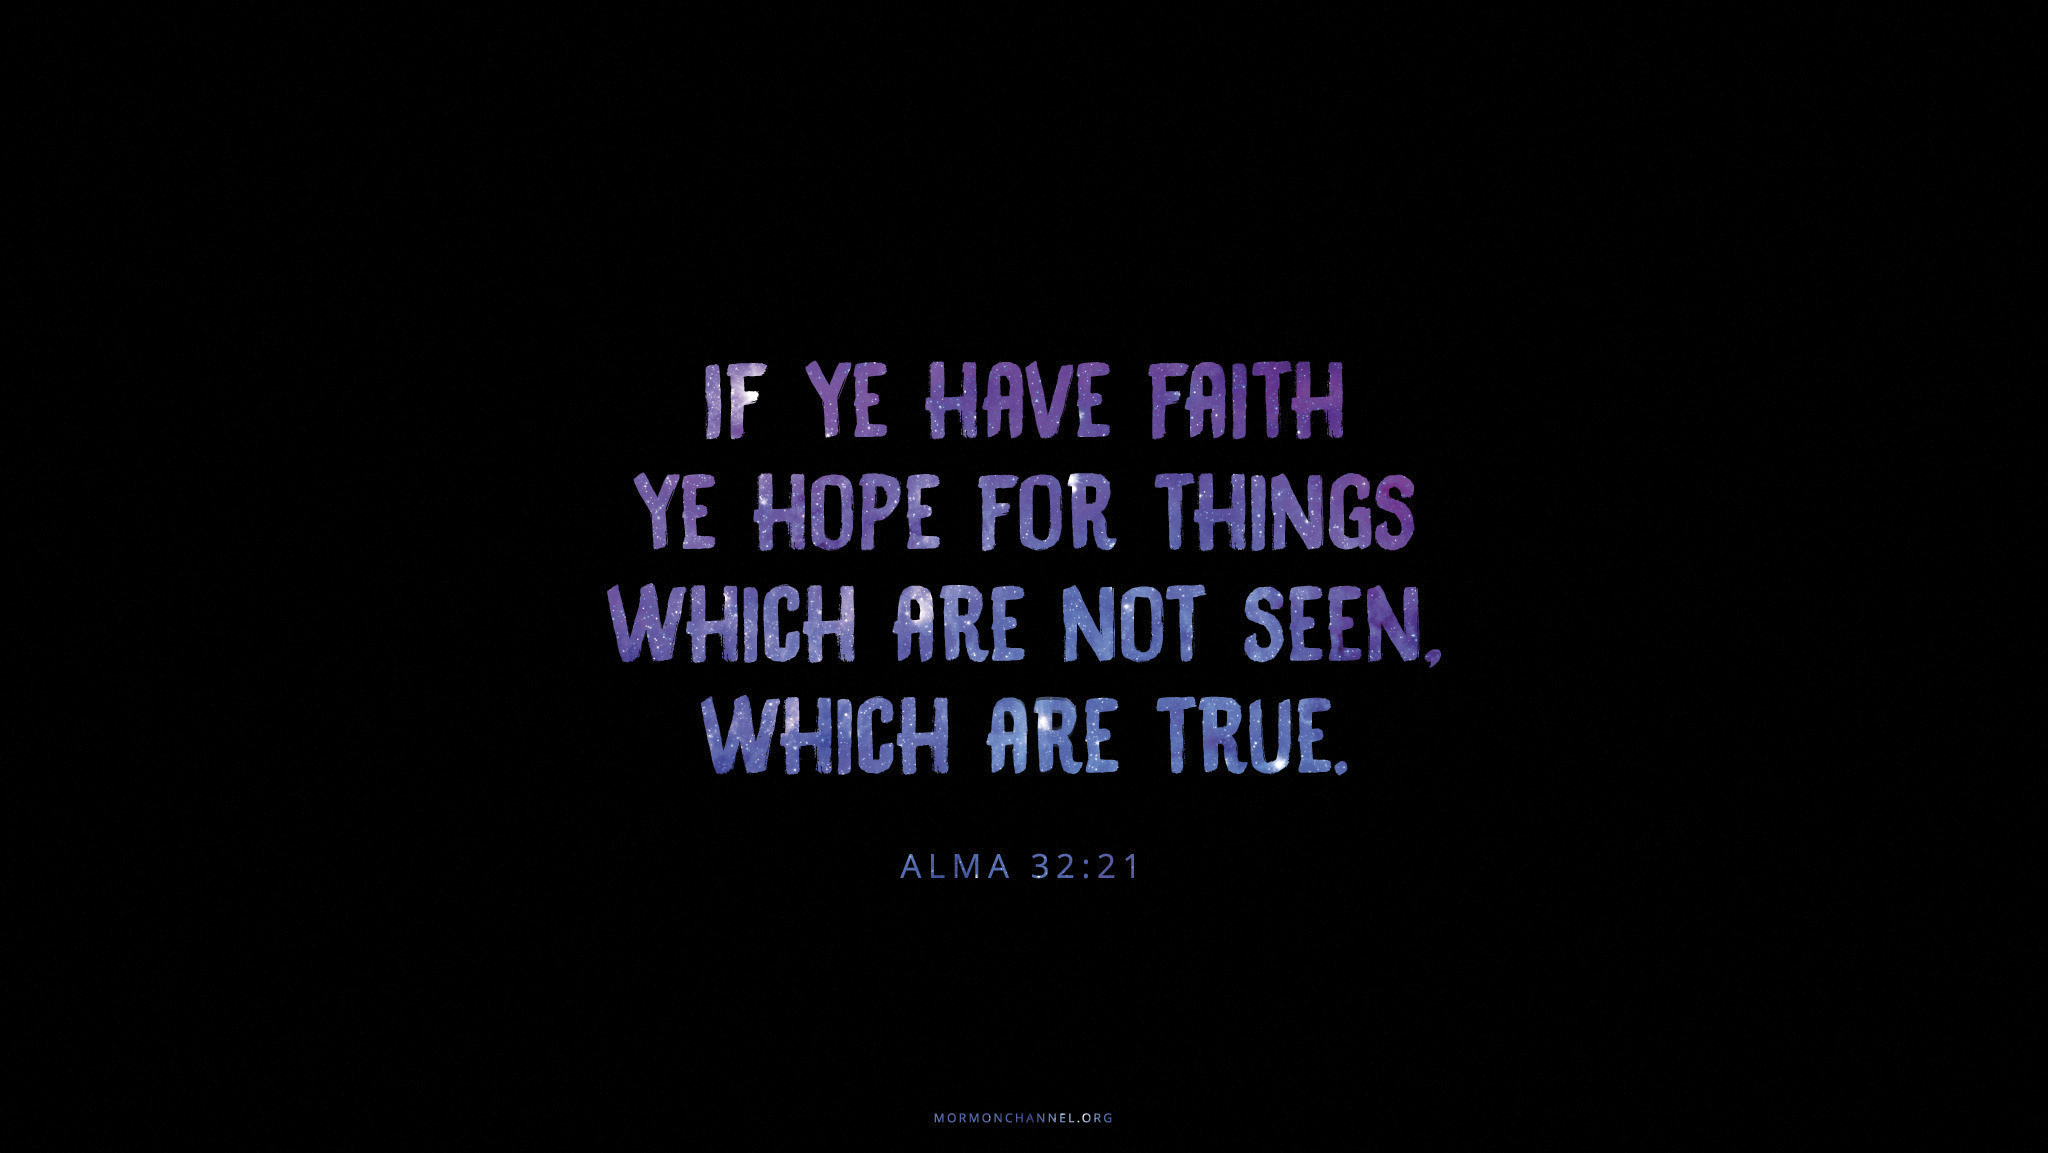 """""""If ye have faith ye hope for things which are not seen, which are true.""""—Alma 32:21"""